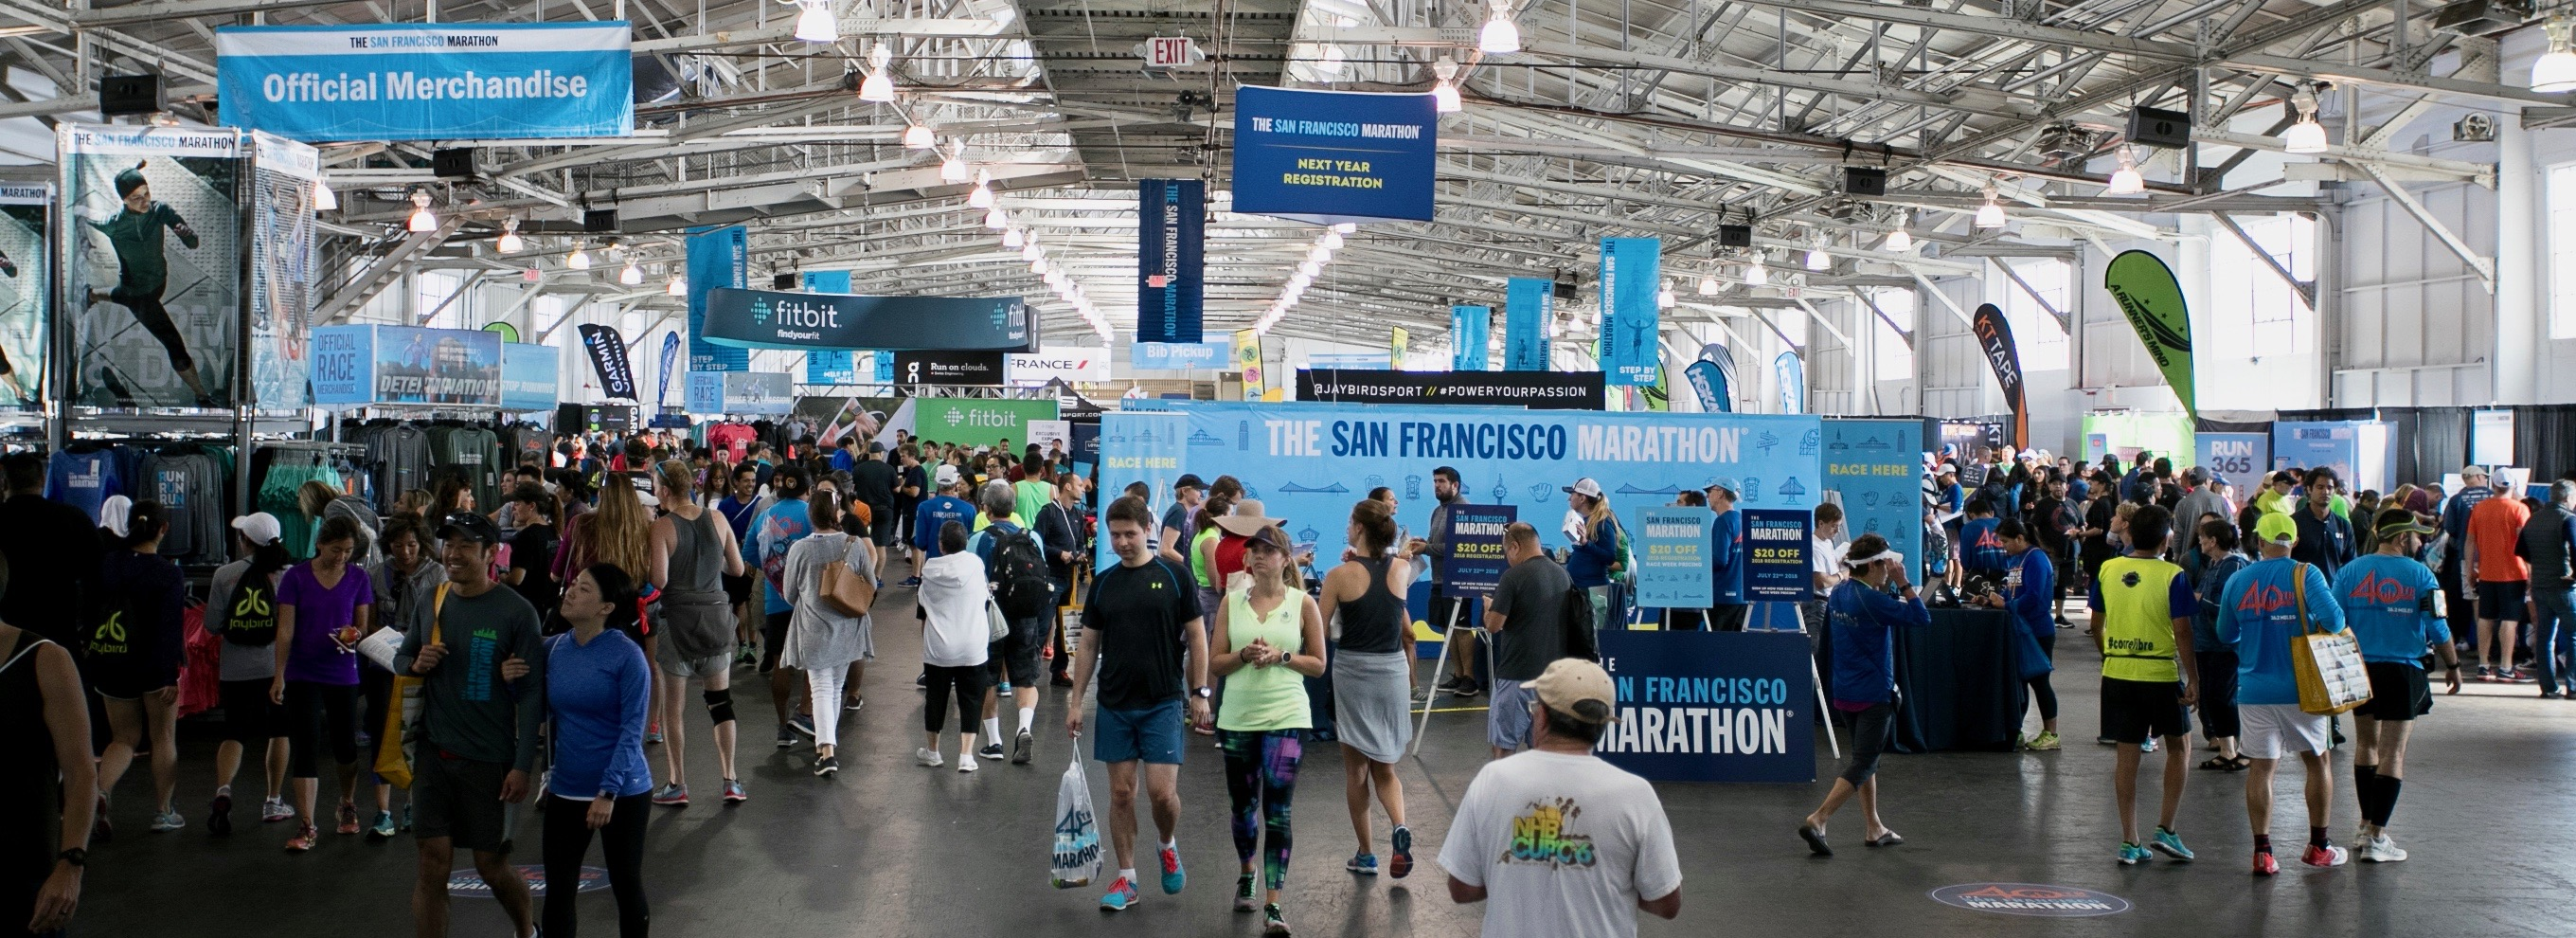 The-San-Francisco-Marathon-Health-and-Fitness-Expo_486__1505940512__sfm-expo-2017-88__1_.jpg